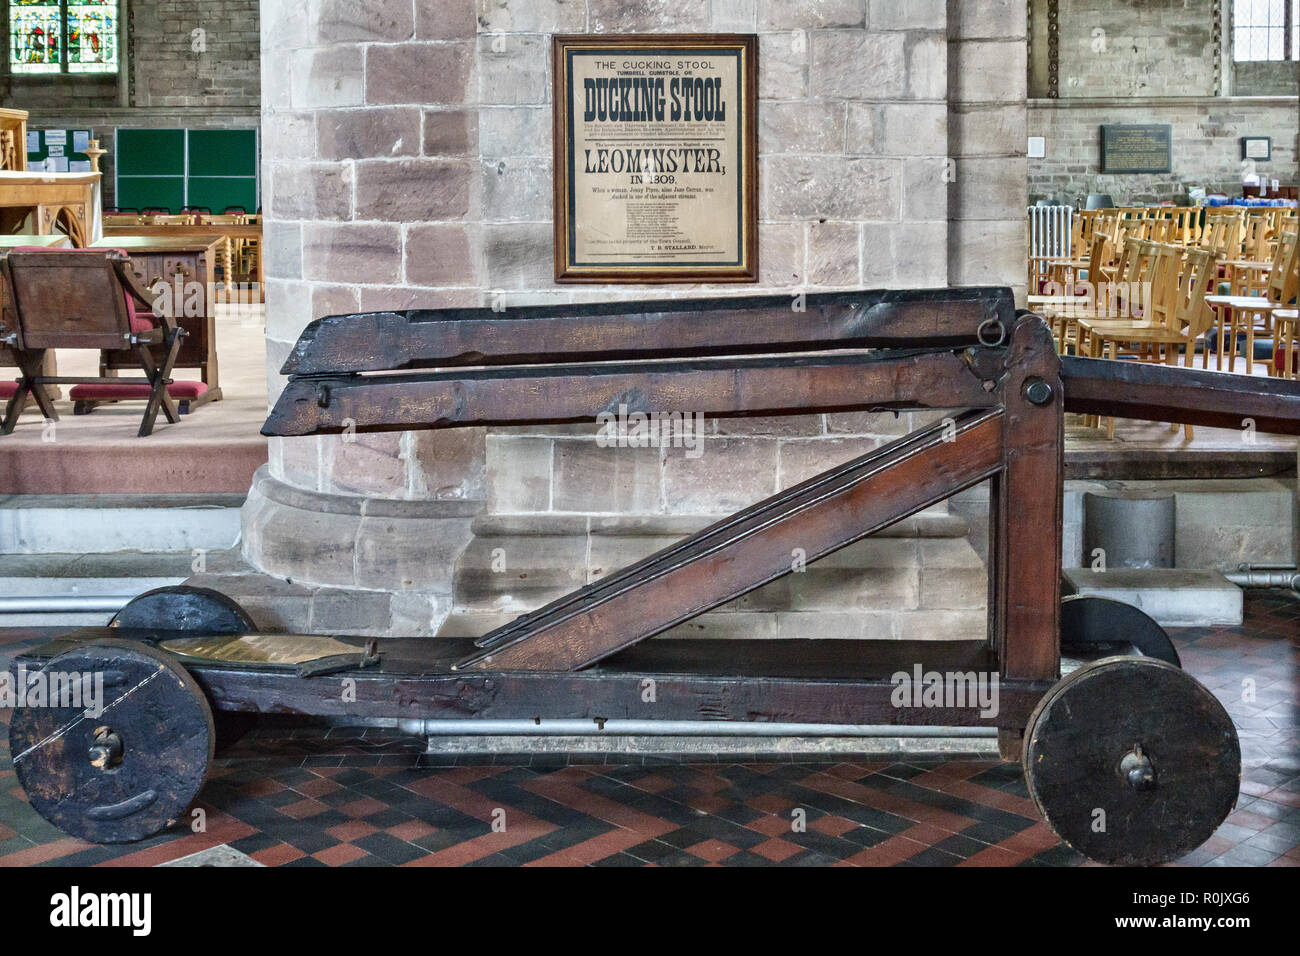 Herefordshire, UK. The old ducking stool (cucking stool) preserved in Leominster Priory Church. The last recorded use was in 1809 - Stock Image